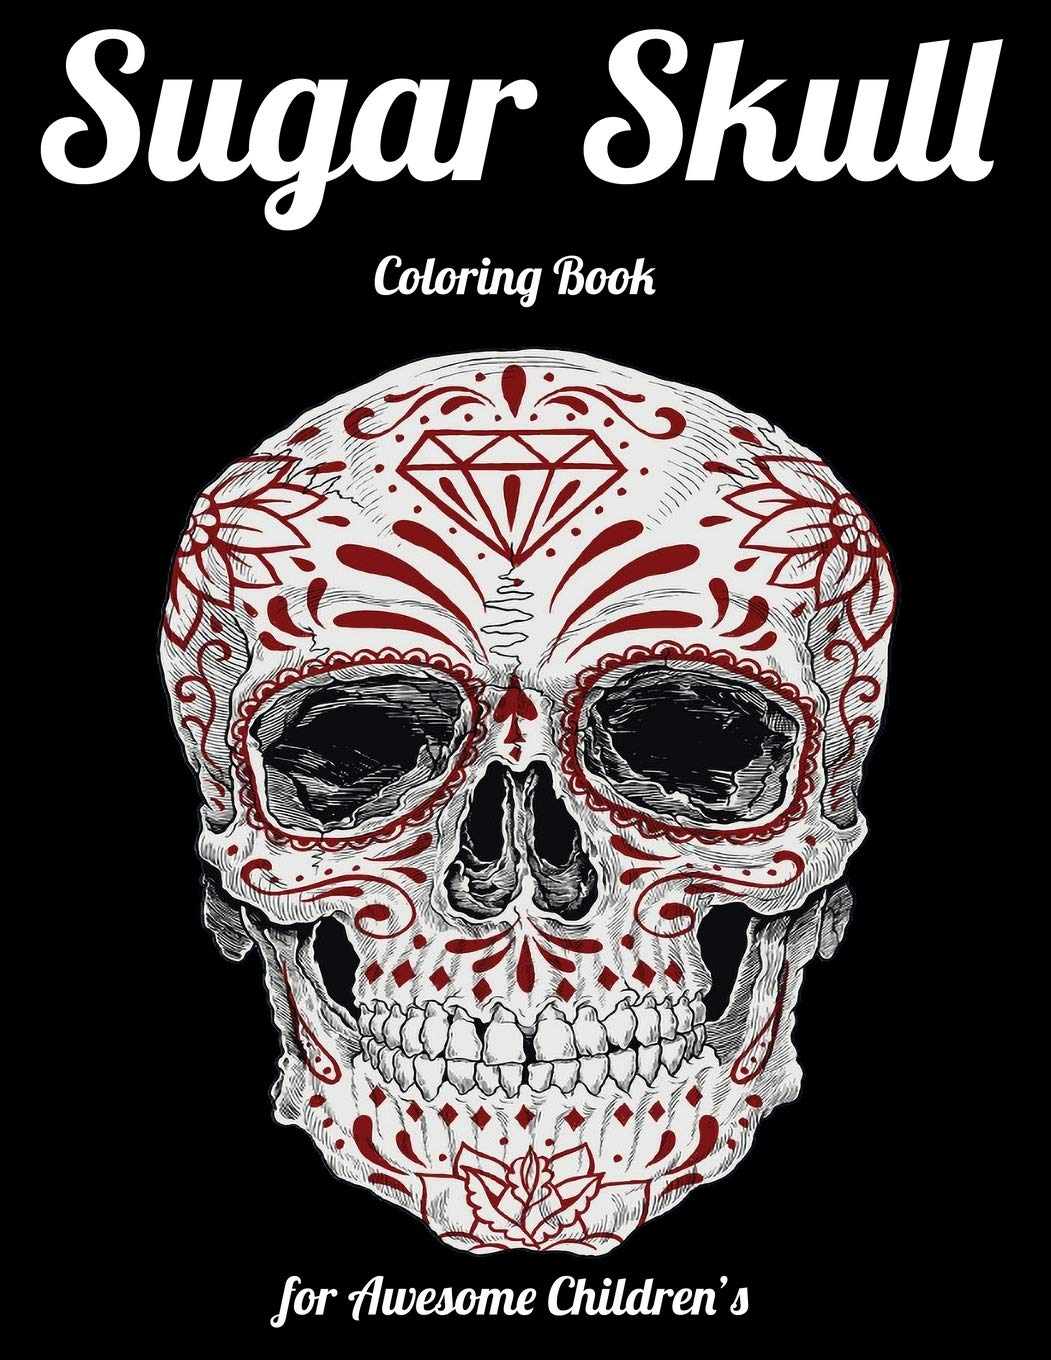 - Buy Sugar Skull Coloring Book For Awesome Children's: Best